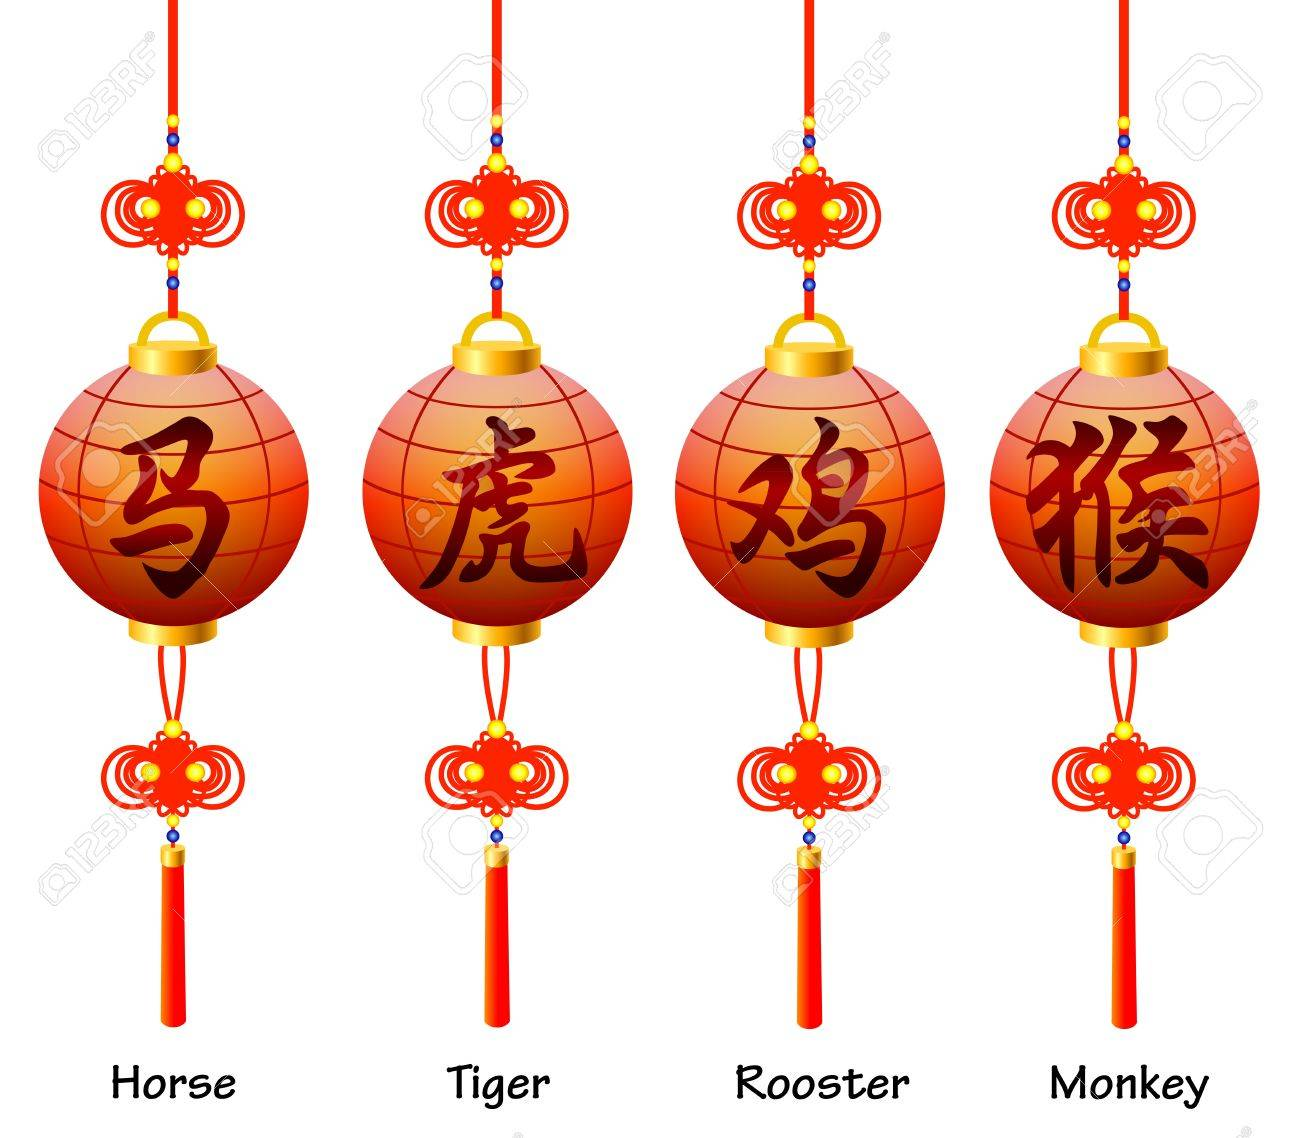 Chinese symbols on the lantern signs of the zodiac rooster chinese symbols on the lantern signs of the zodiac rooster horse monkey tiger biocorpaavc Gallery